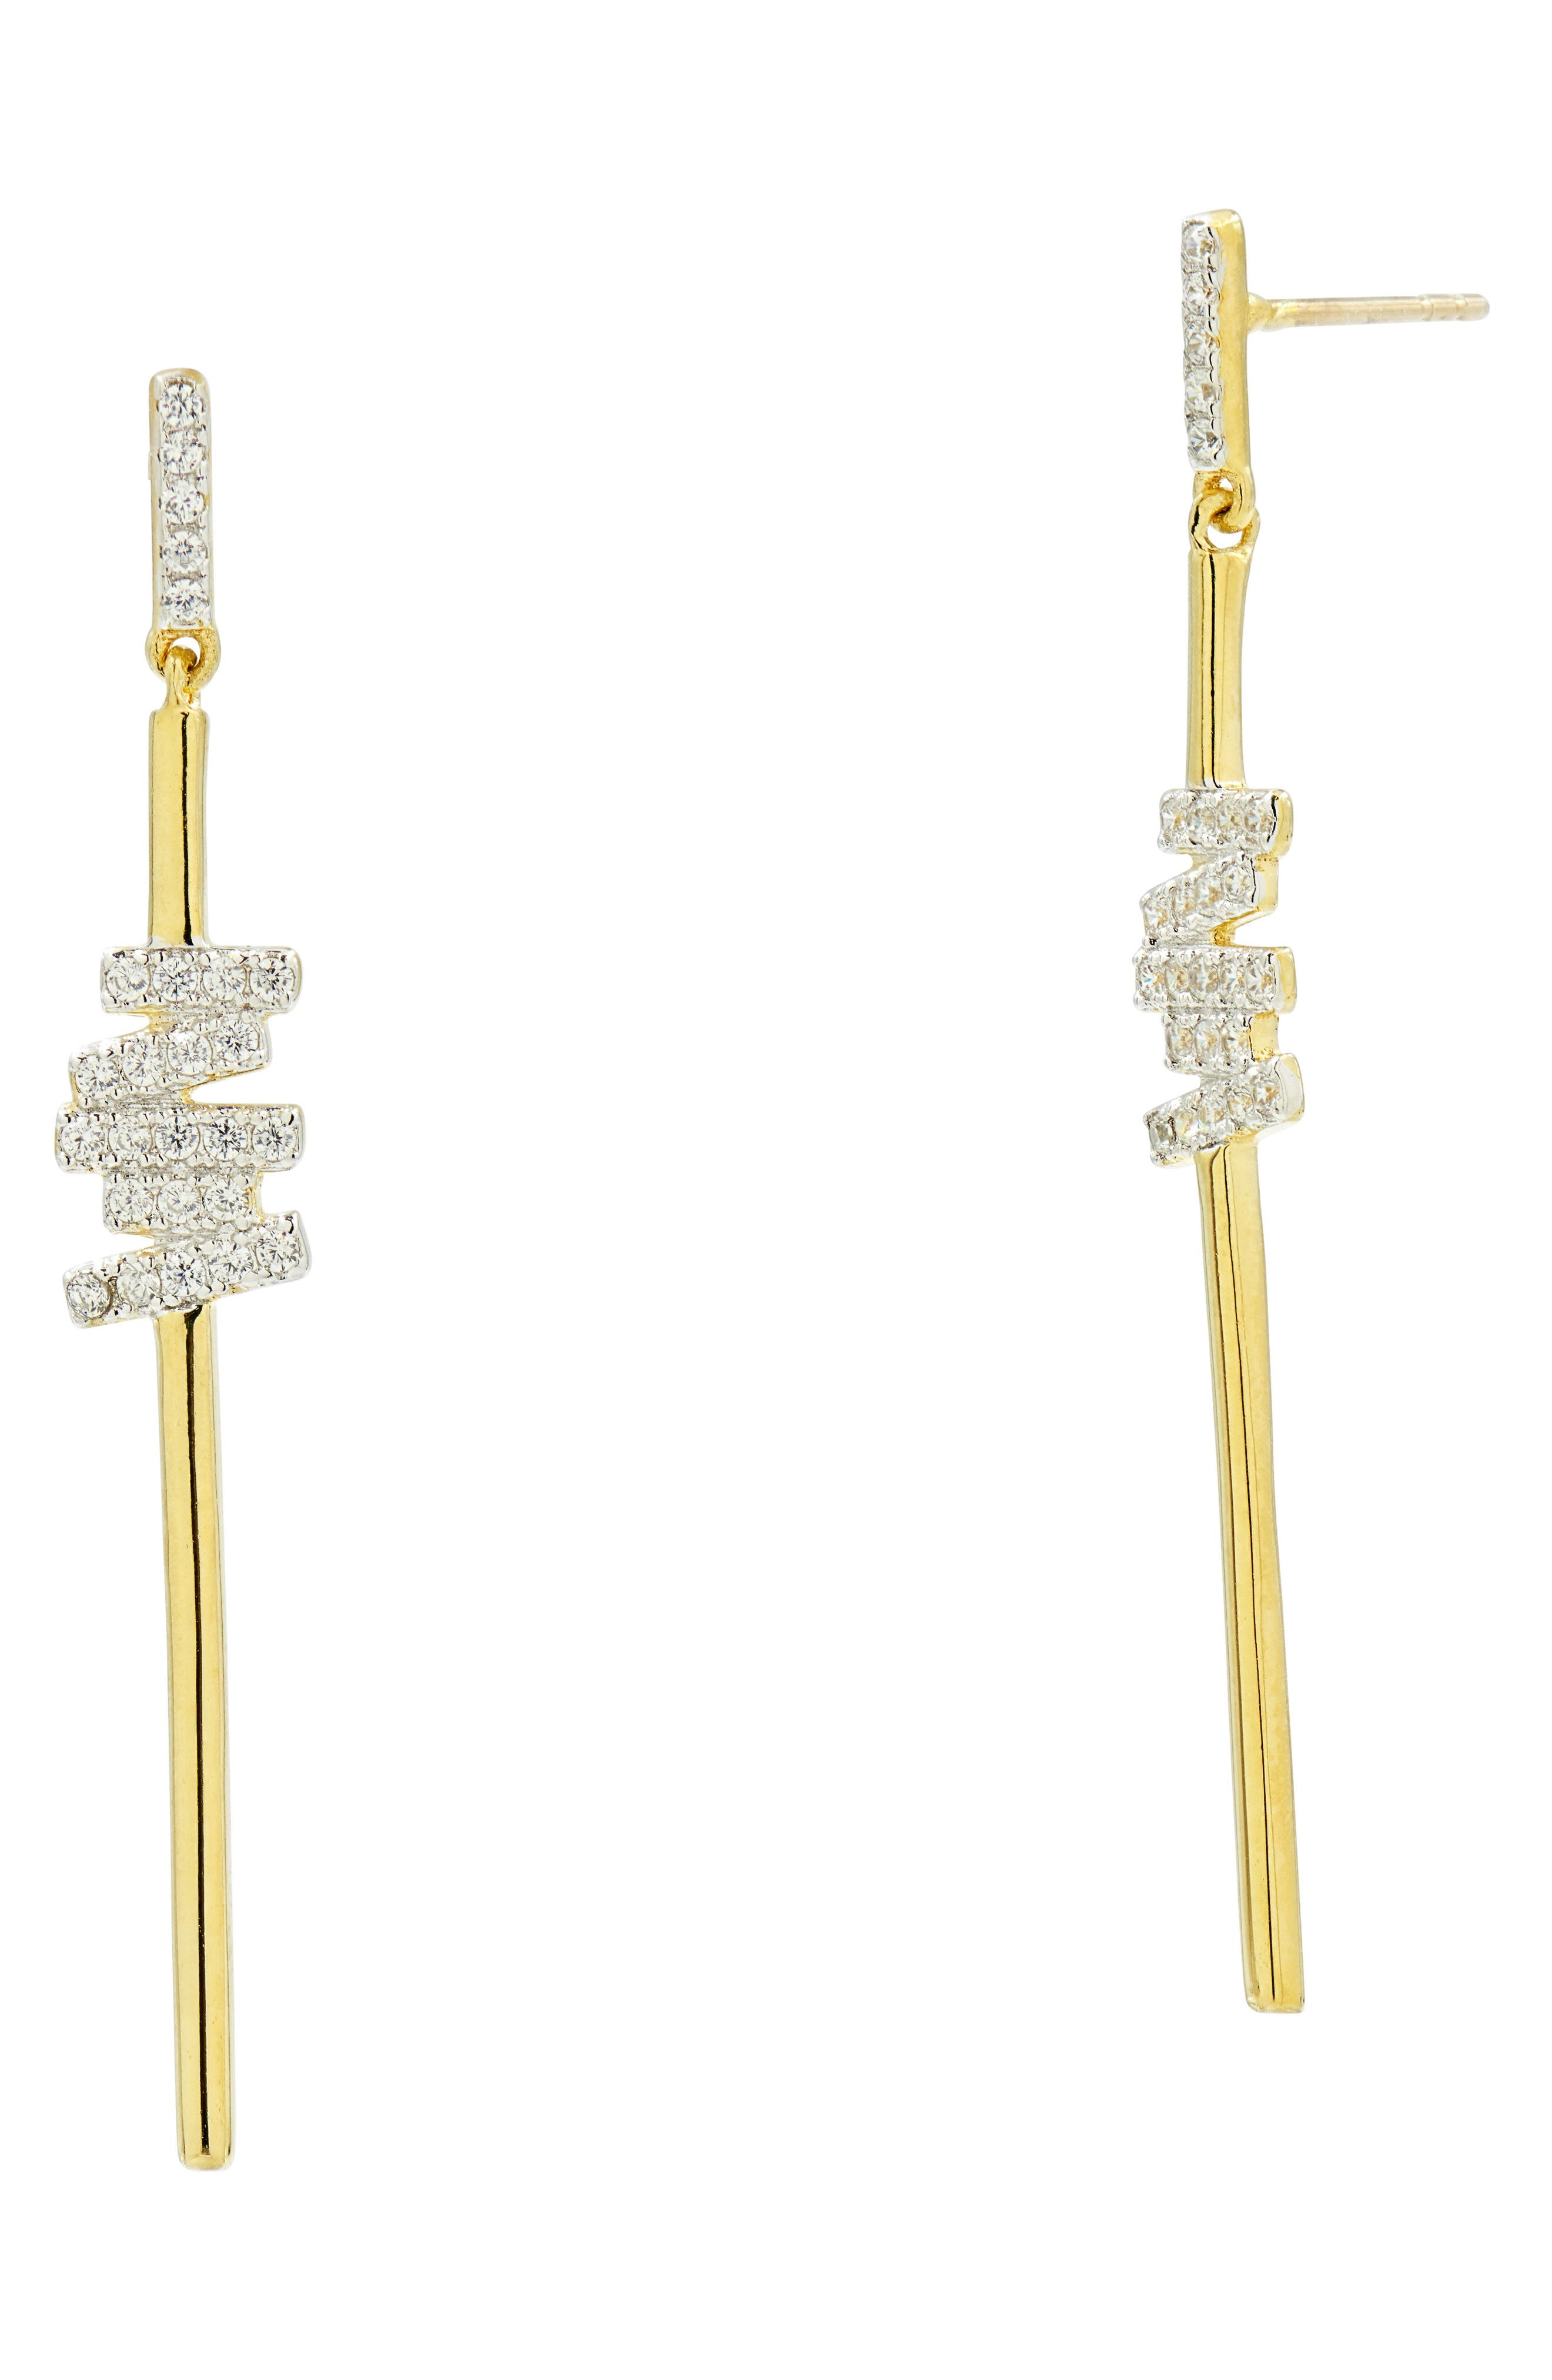 Radiance Cubic Zirconia Drop Earrings,                             Main thumbnail 1, color,                             SILVER/ GOLD